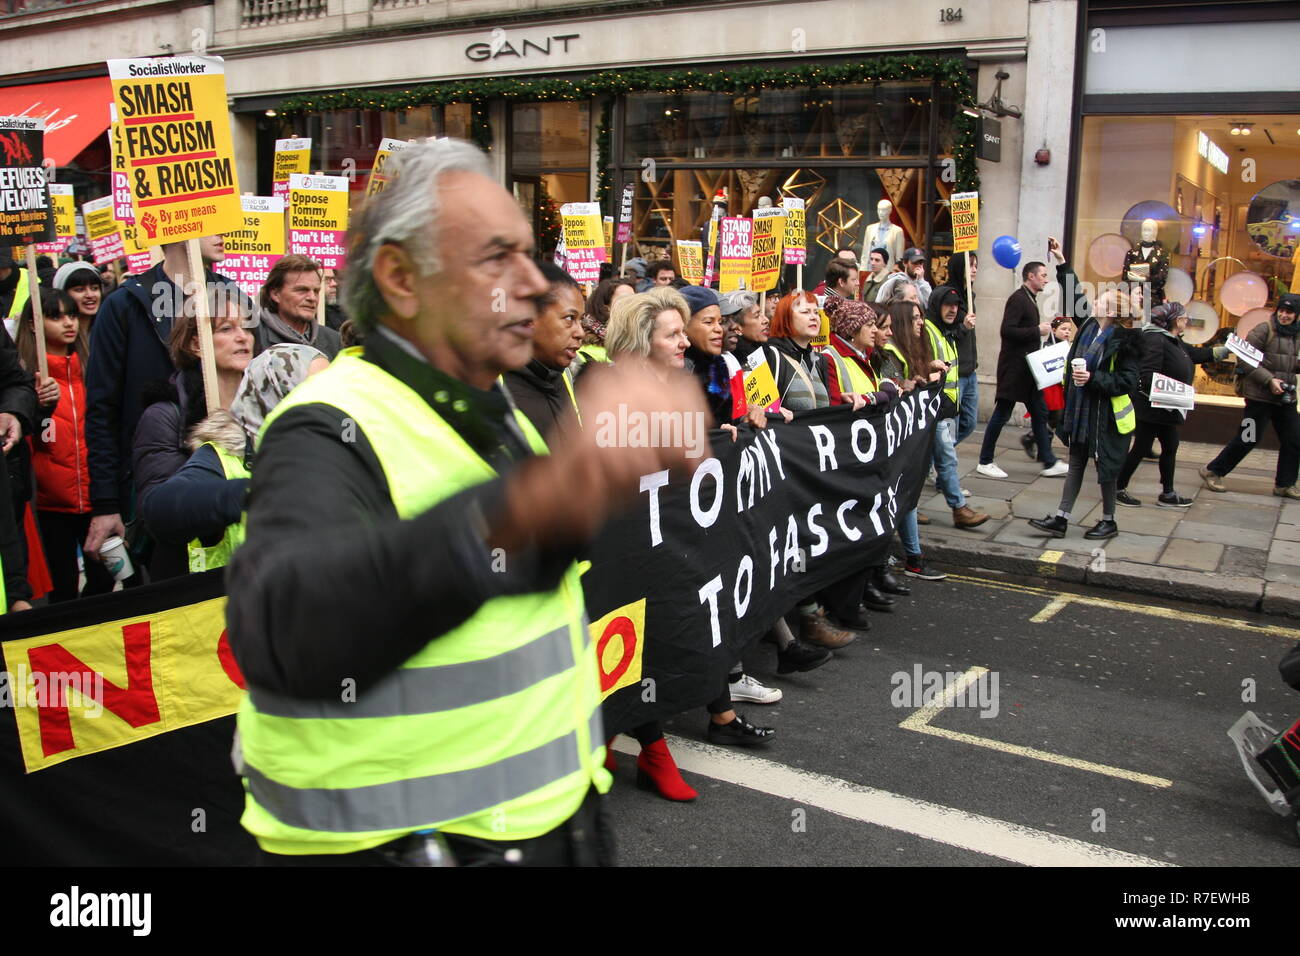 London, UK, 9th December 2018. A demonstration that organisers described as being for all anti-fascists, regardless of their positions on leave/remain on Brexit, opposes 'Tommy Robinson, fascism and racism.   The march from the BBC, Portland Place to Whitehall is a counter protest against one called by Robinson and UKIP. Roland Ravenhill / Alamy Live News - Stock Image